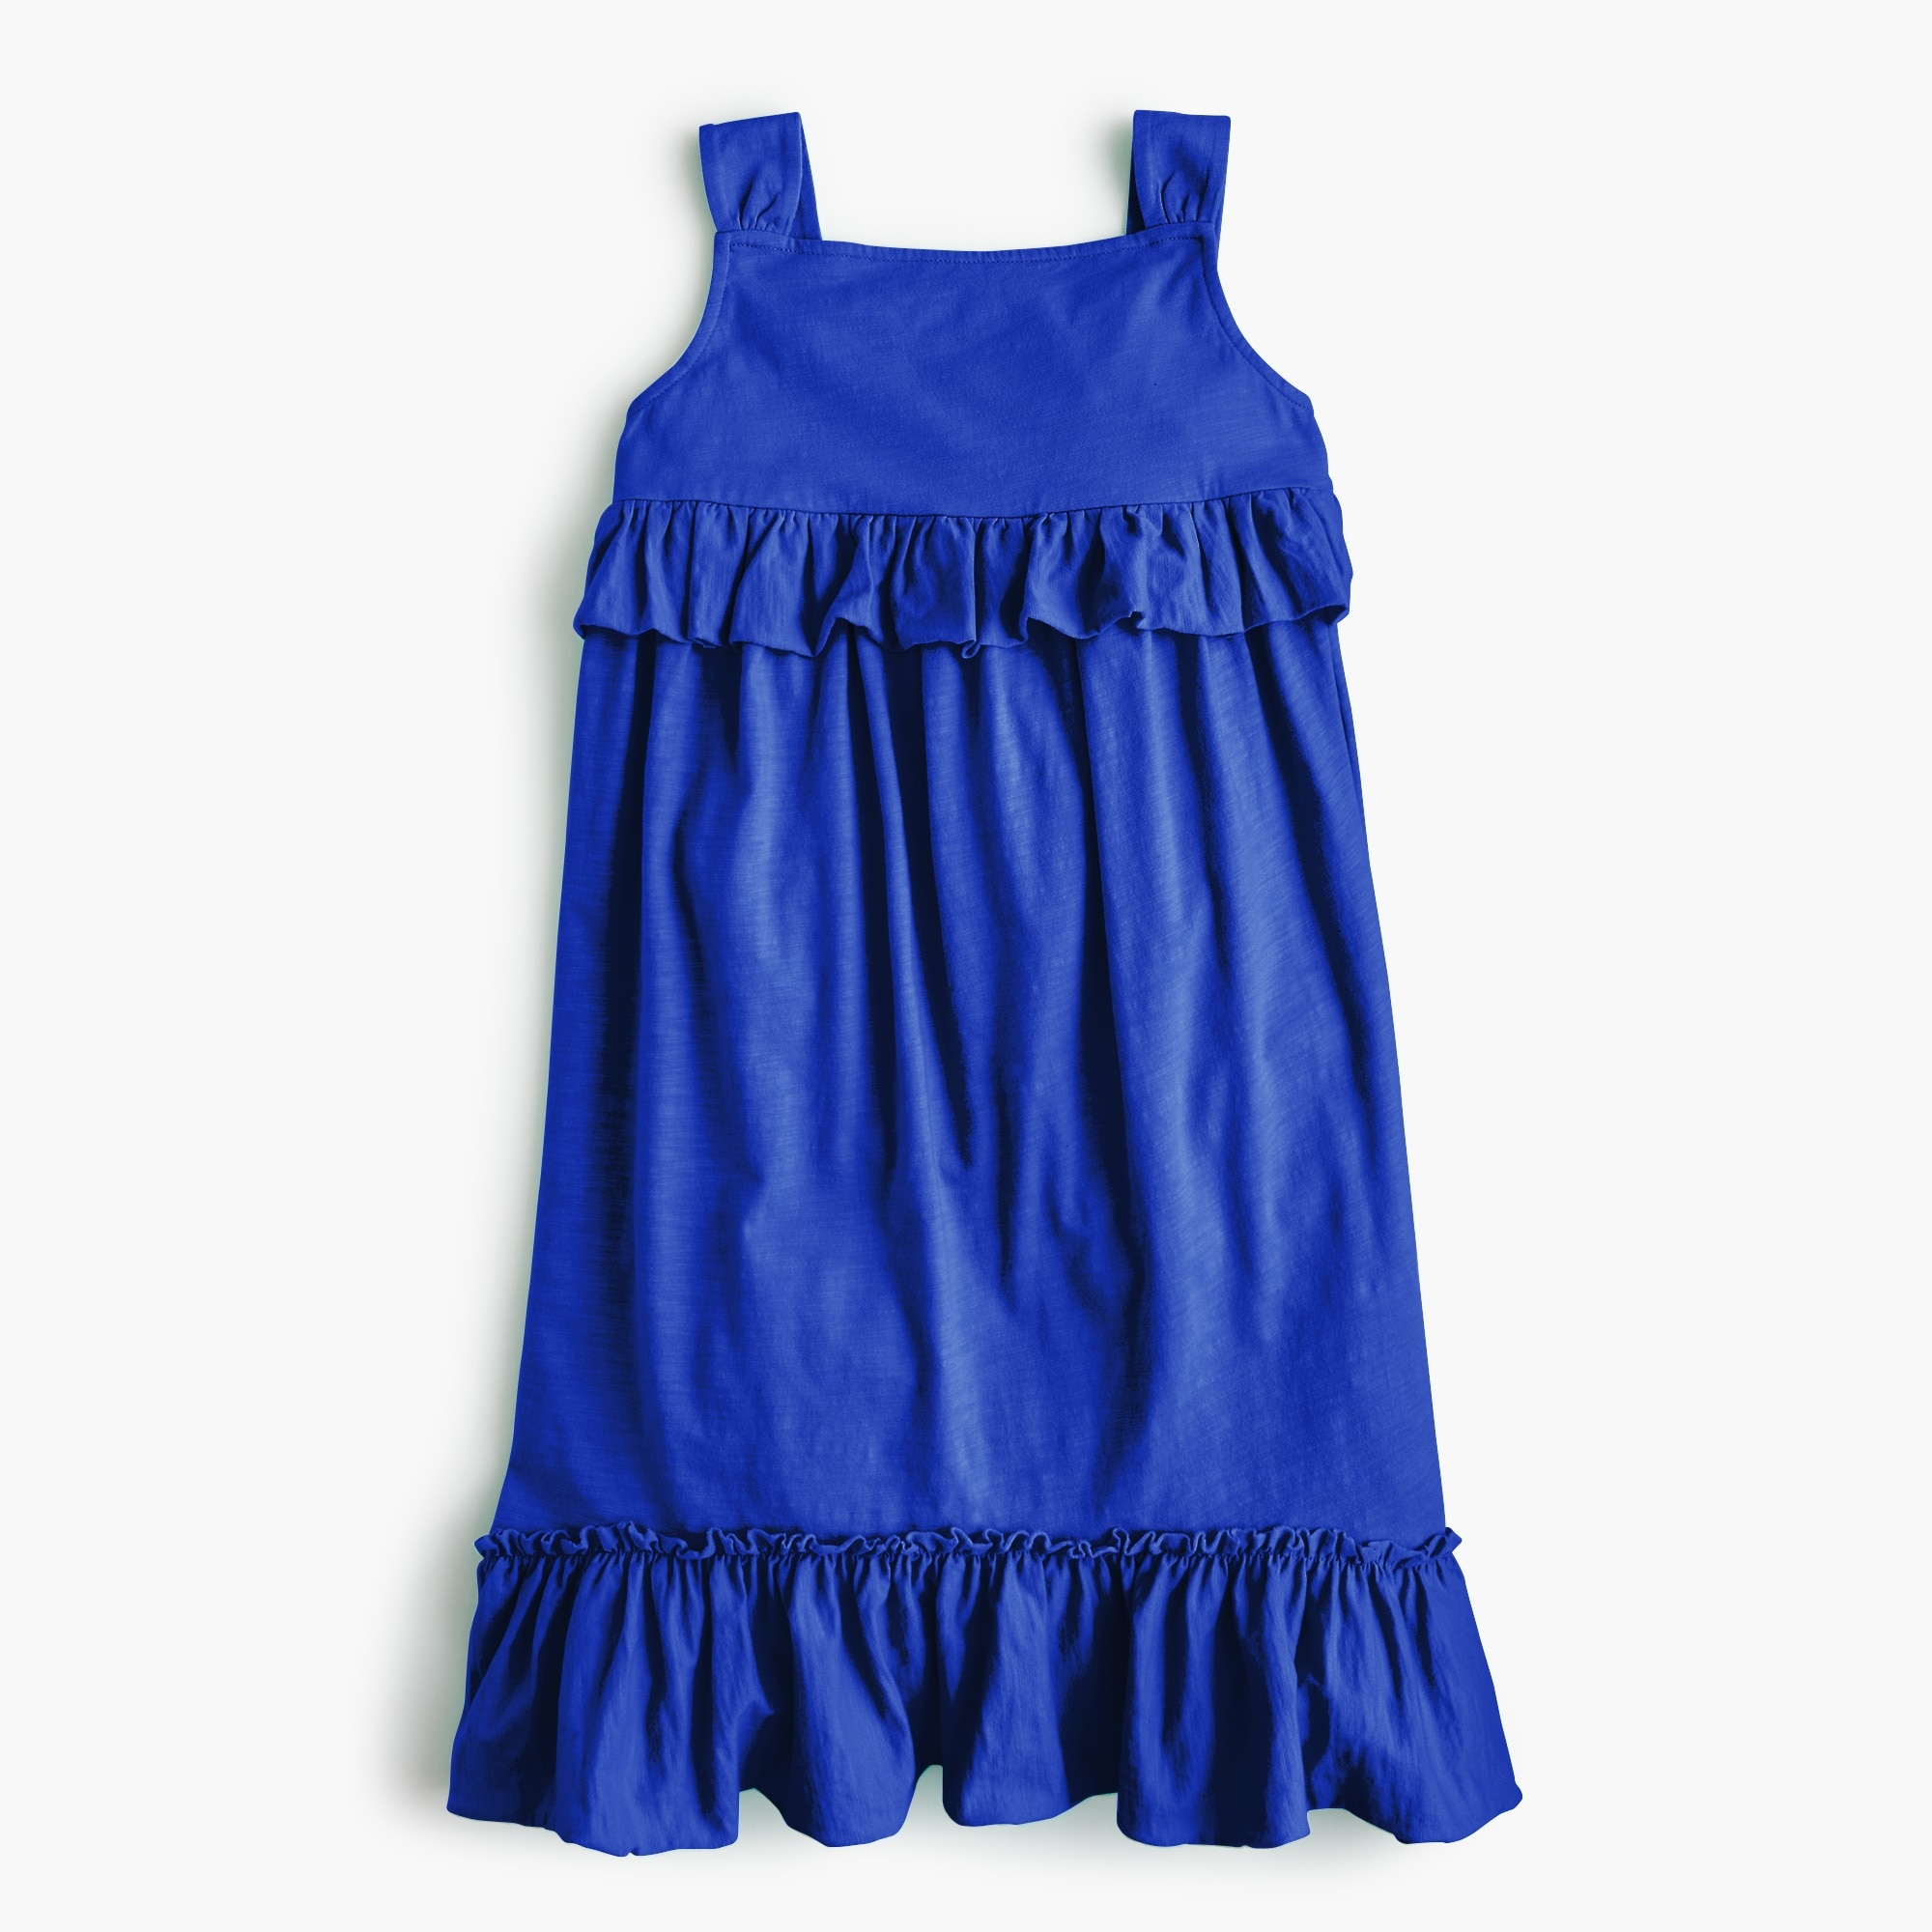 Girls' ruffle tank dress girl dresses & jumpsuits c